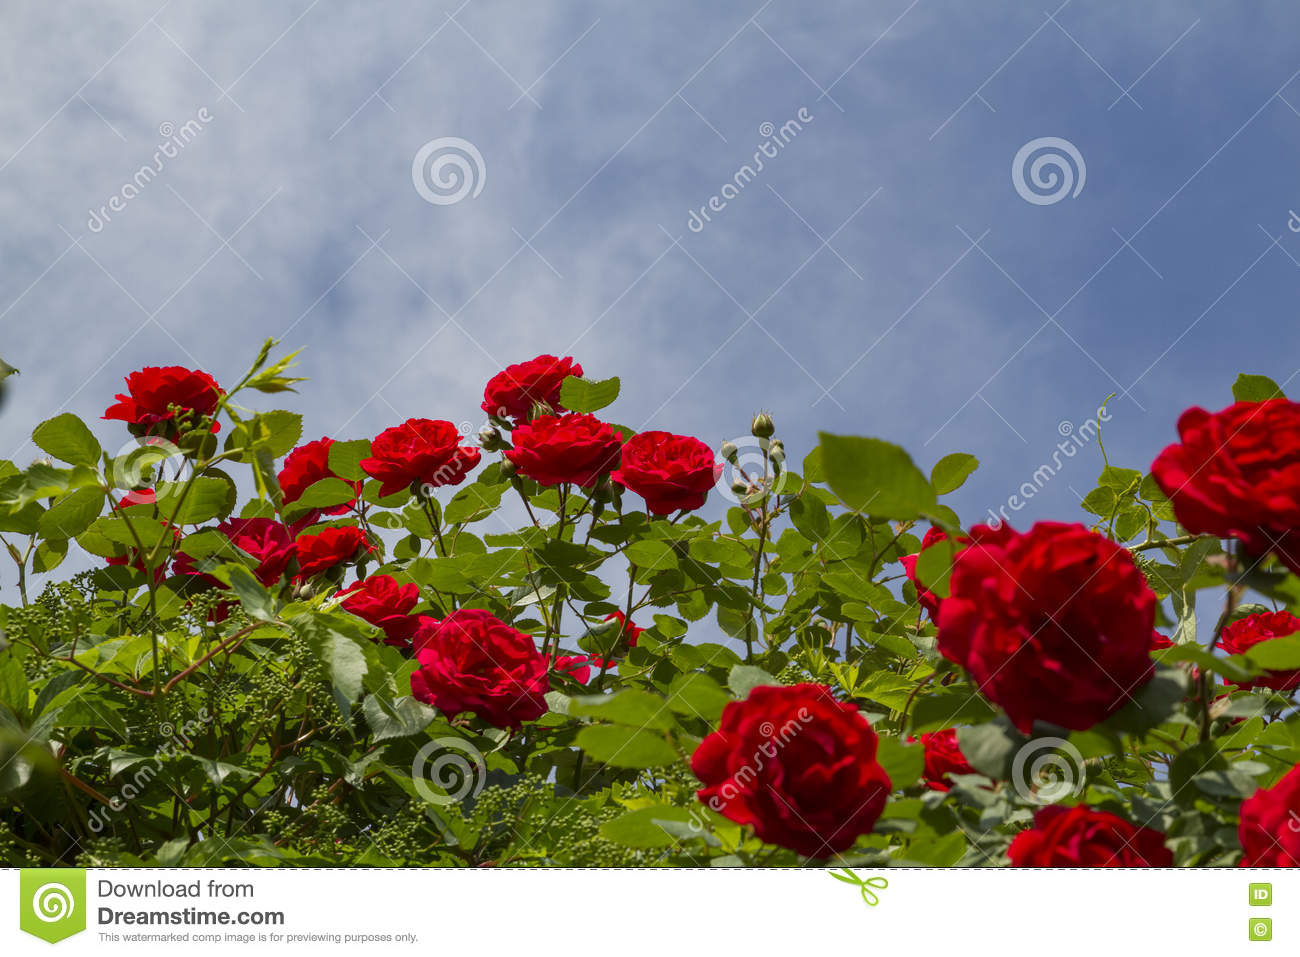 449 899 Roses Photos Free Royalty Free Stock Photos From Dreamstime